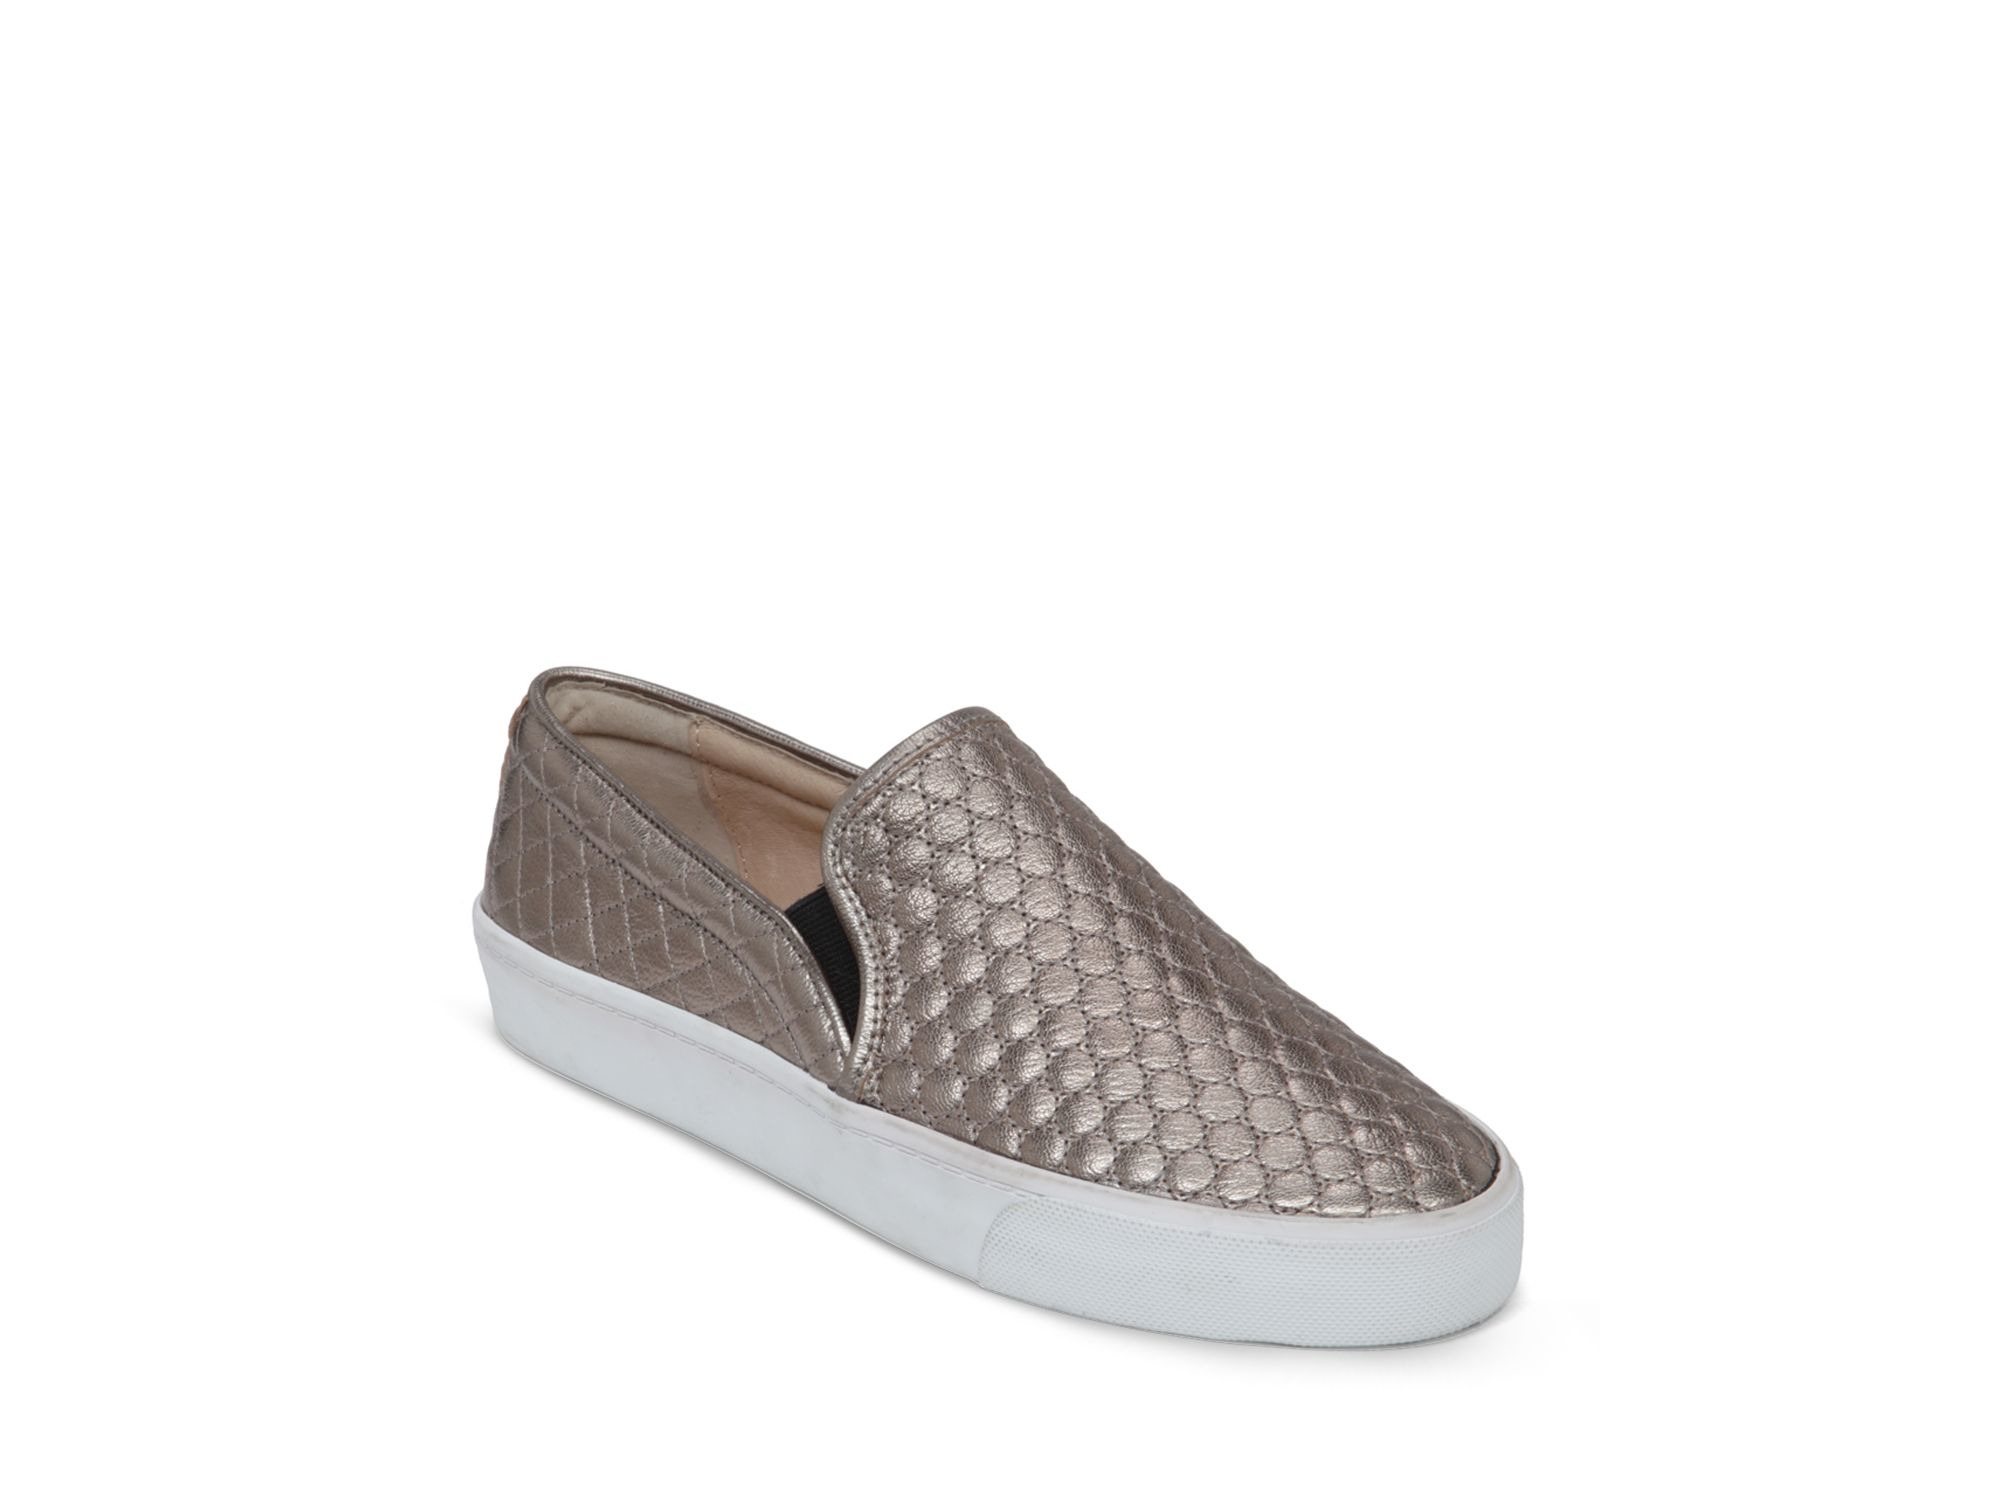 97e95161320547 Lyst - Vince Camuto Slip On Sneakers - Banner Metallic Quilted in ...